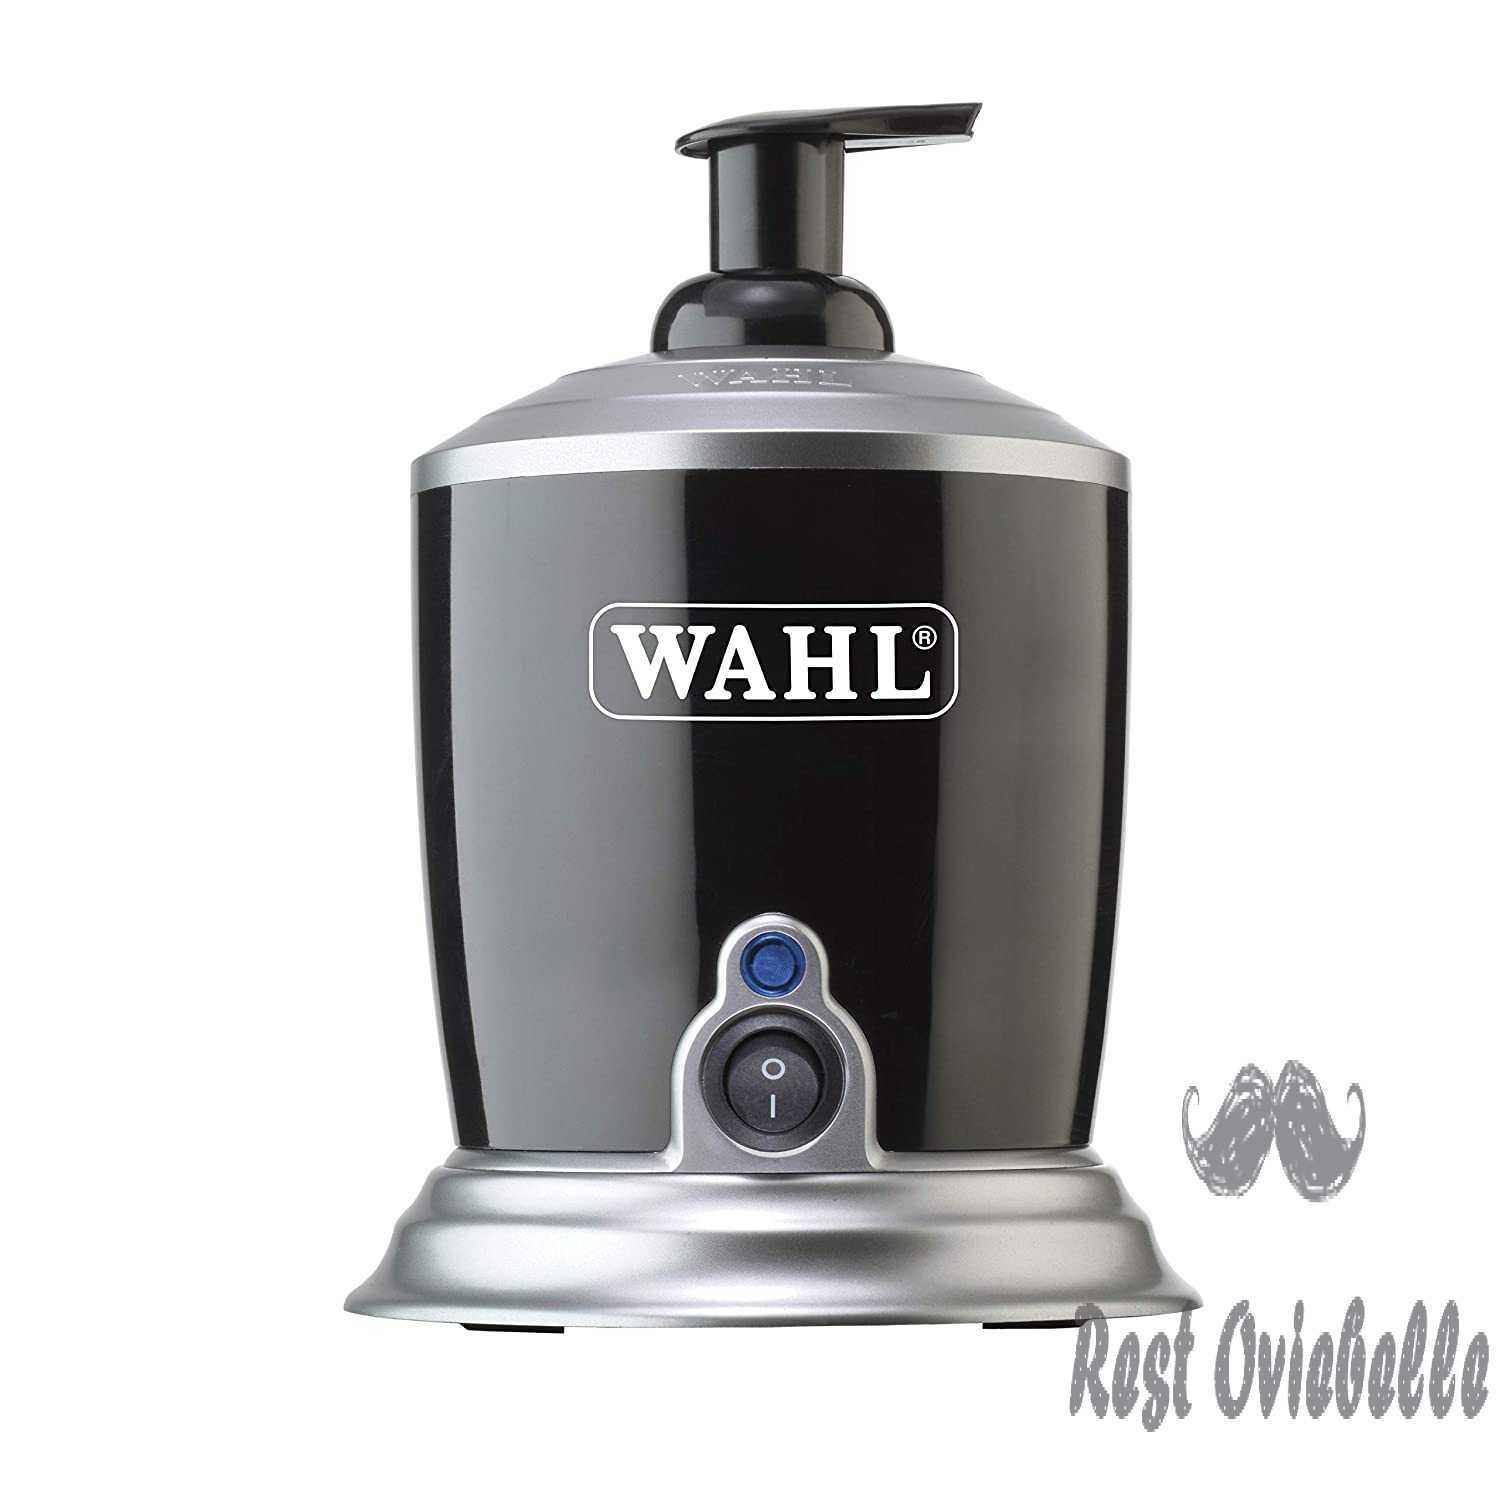 Wahl Professional '9 Hot Lather